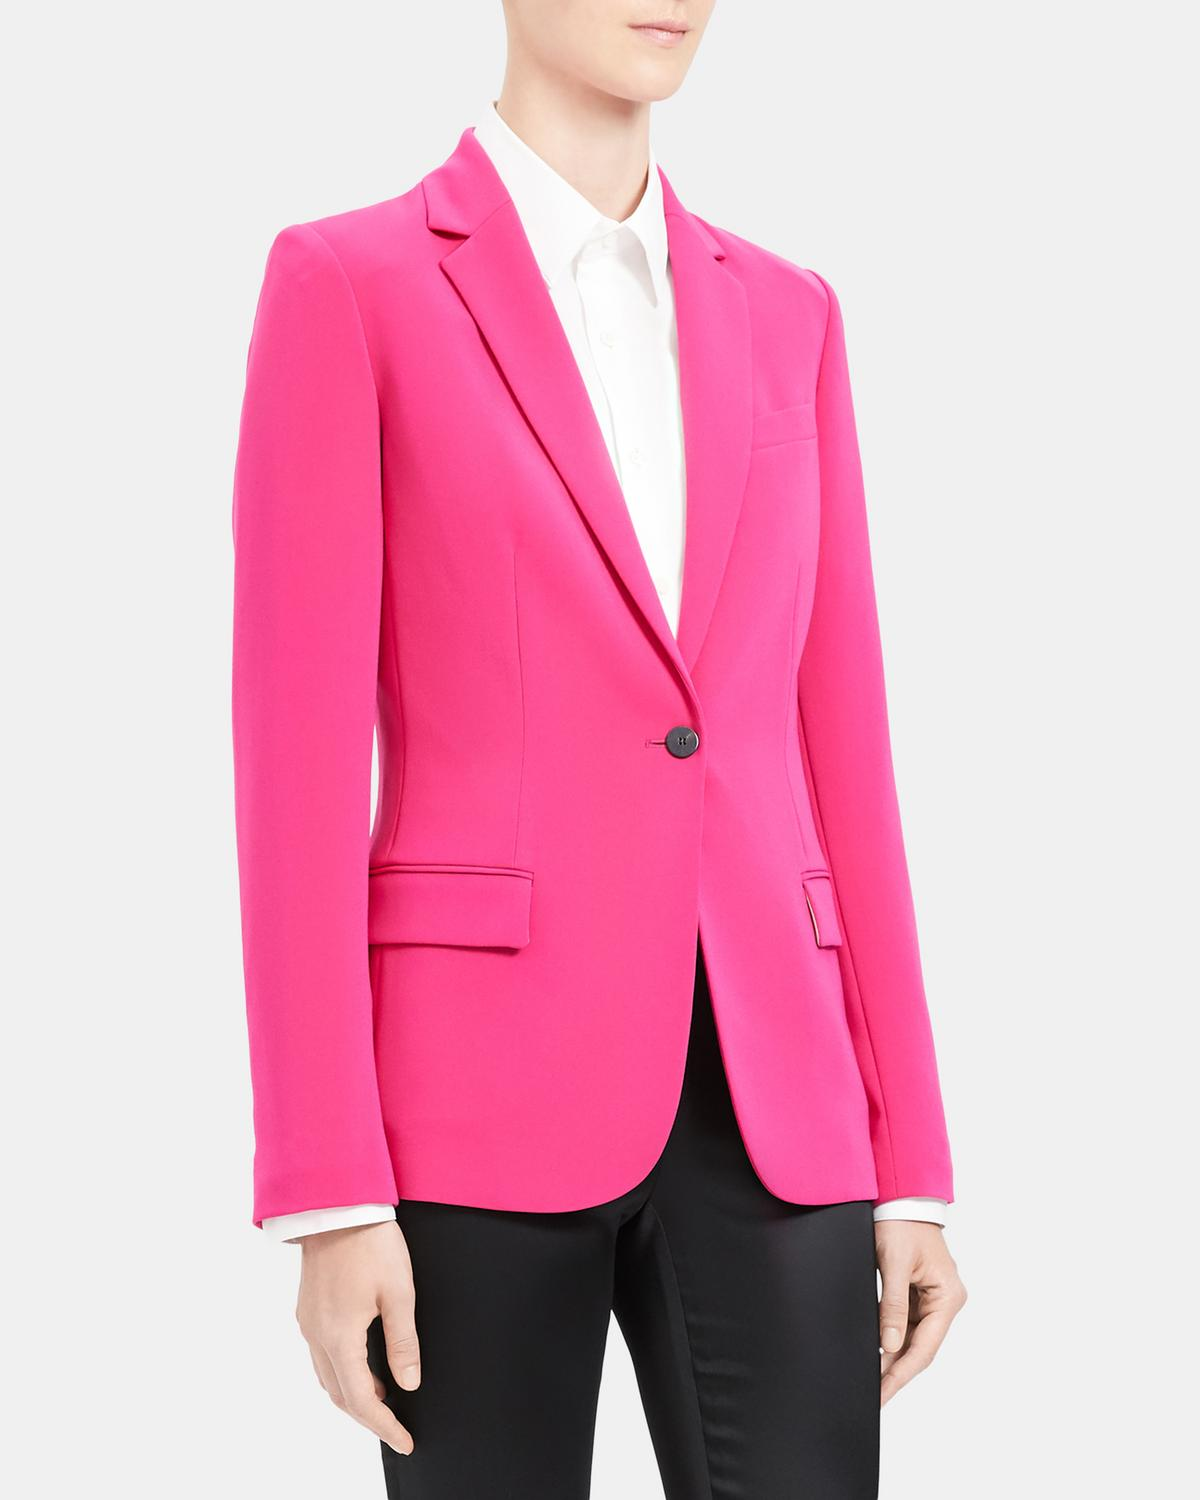 STAPLE BLAZER B